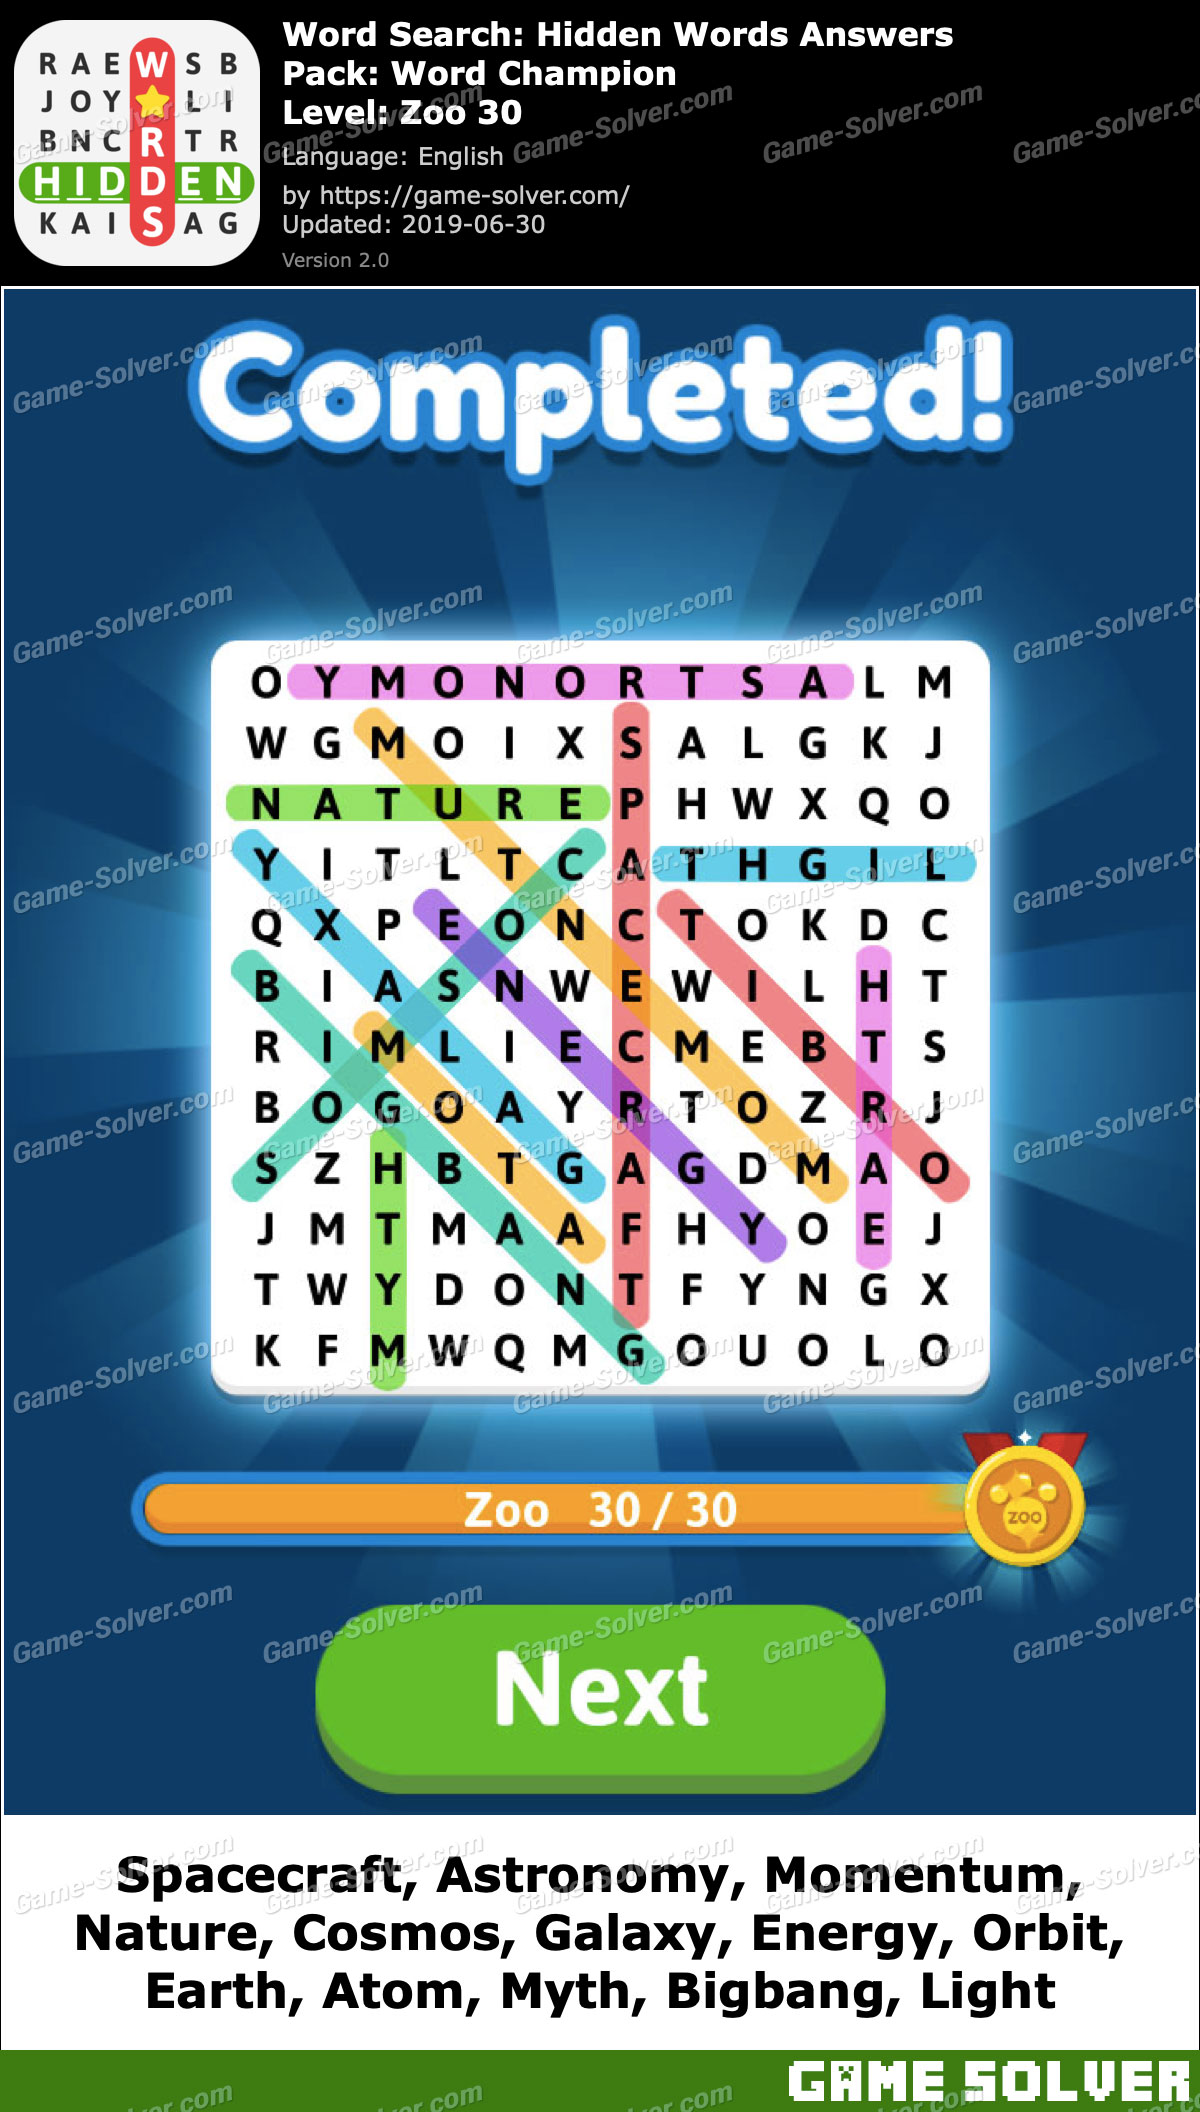 Word Search Hidden Words Word Champion-Zoo 30 Answers